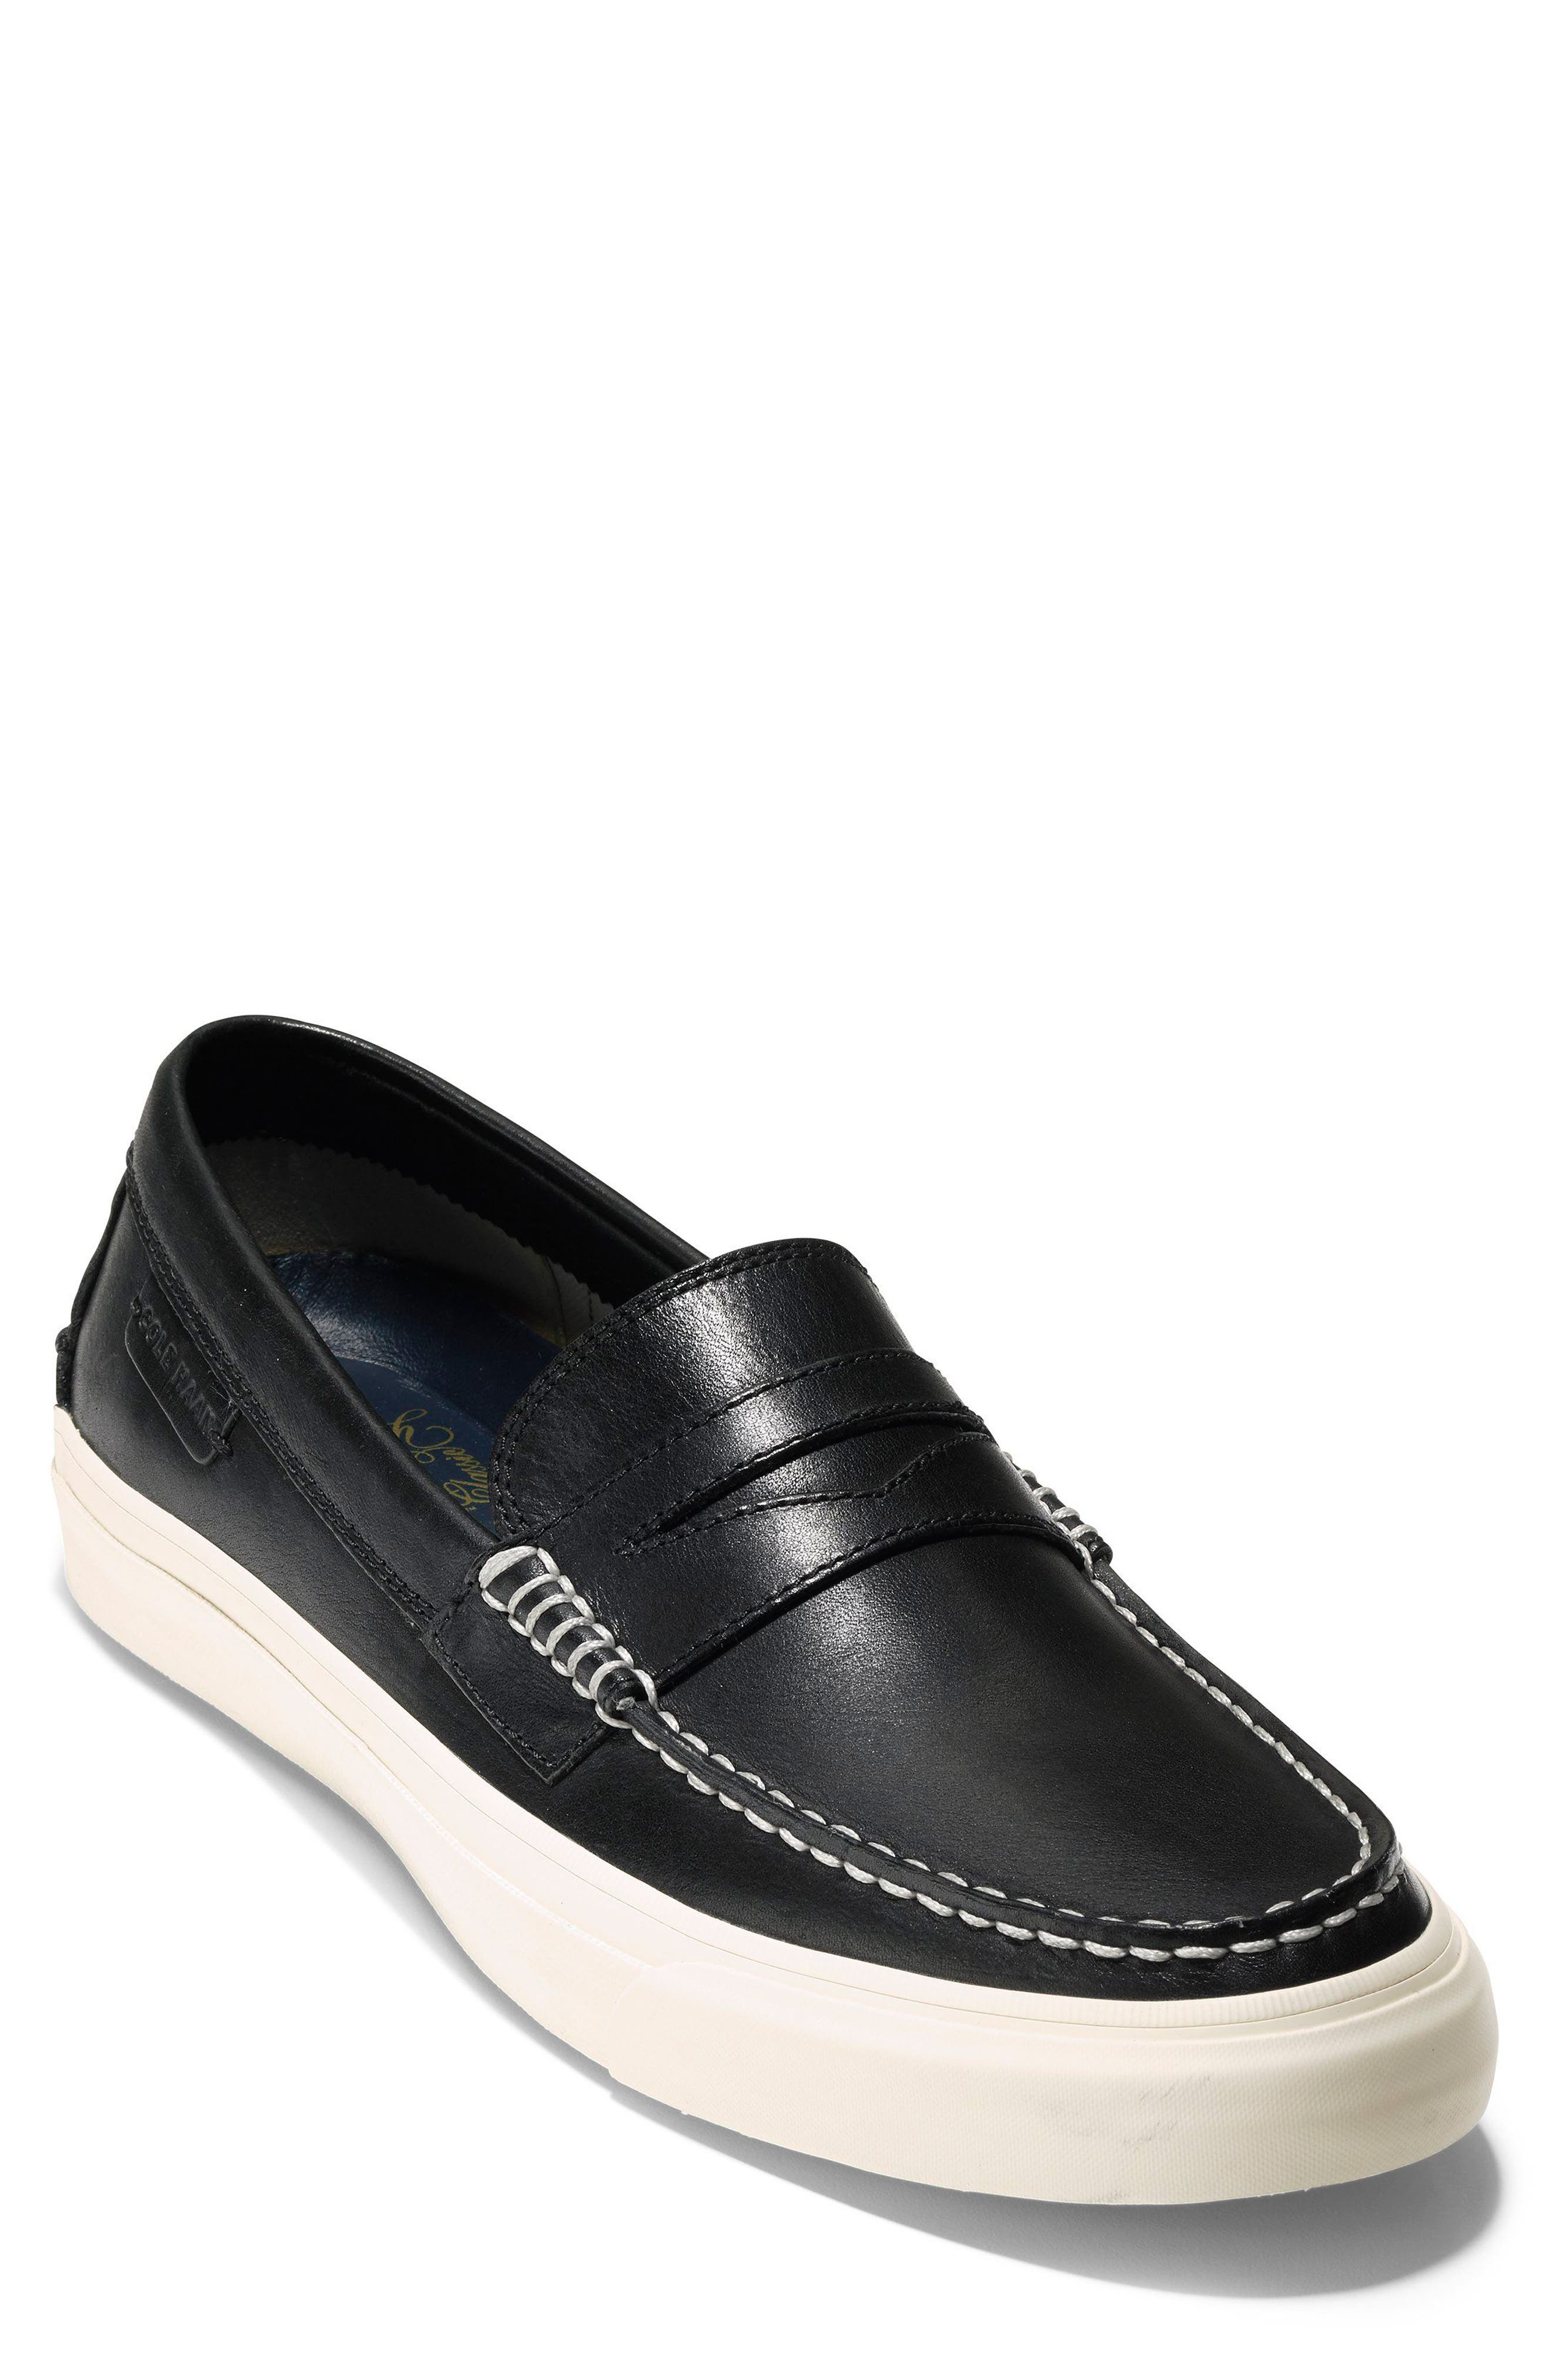 Pinch Weekend LX Penny Loafer,                         Main,                         color, 001